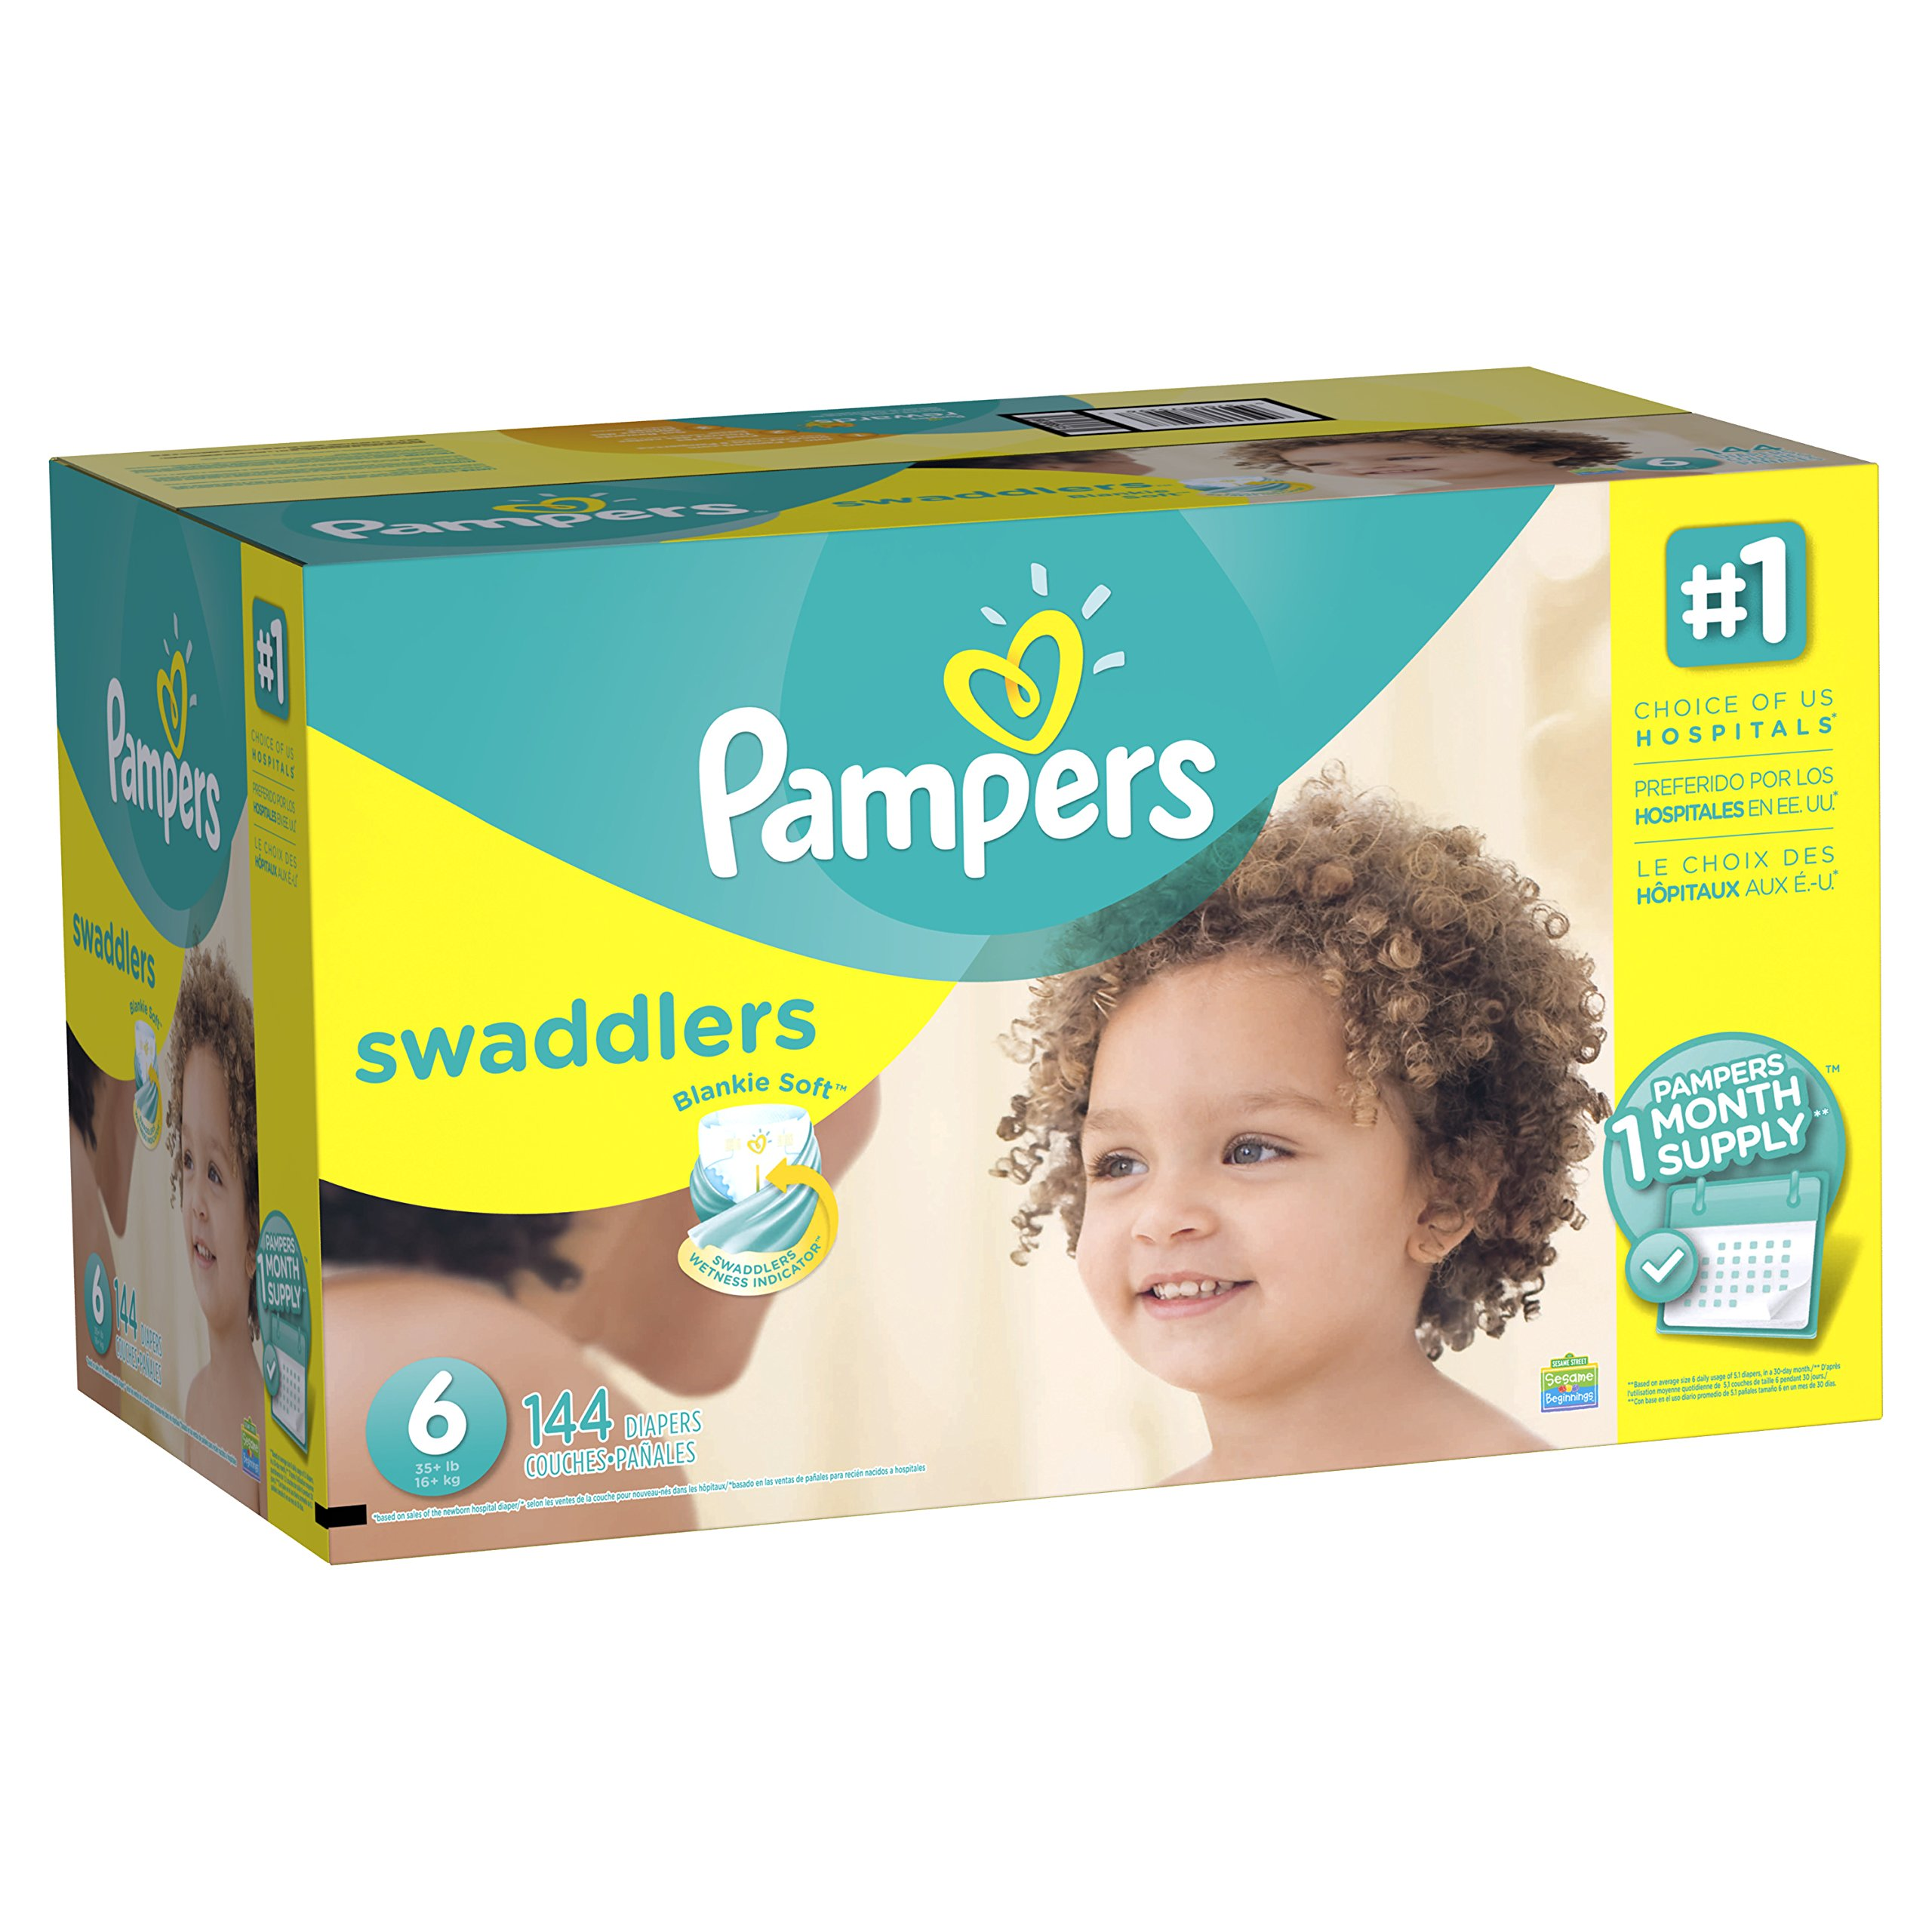 Pampers Swaddlers Disposable Diapers Size 6, 144 Count (Packaging May Vary)